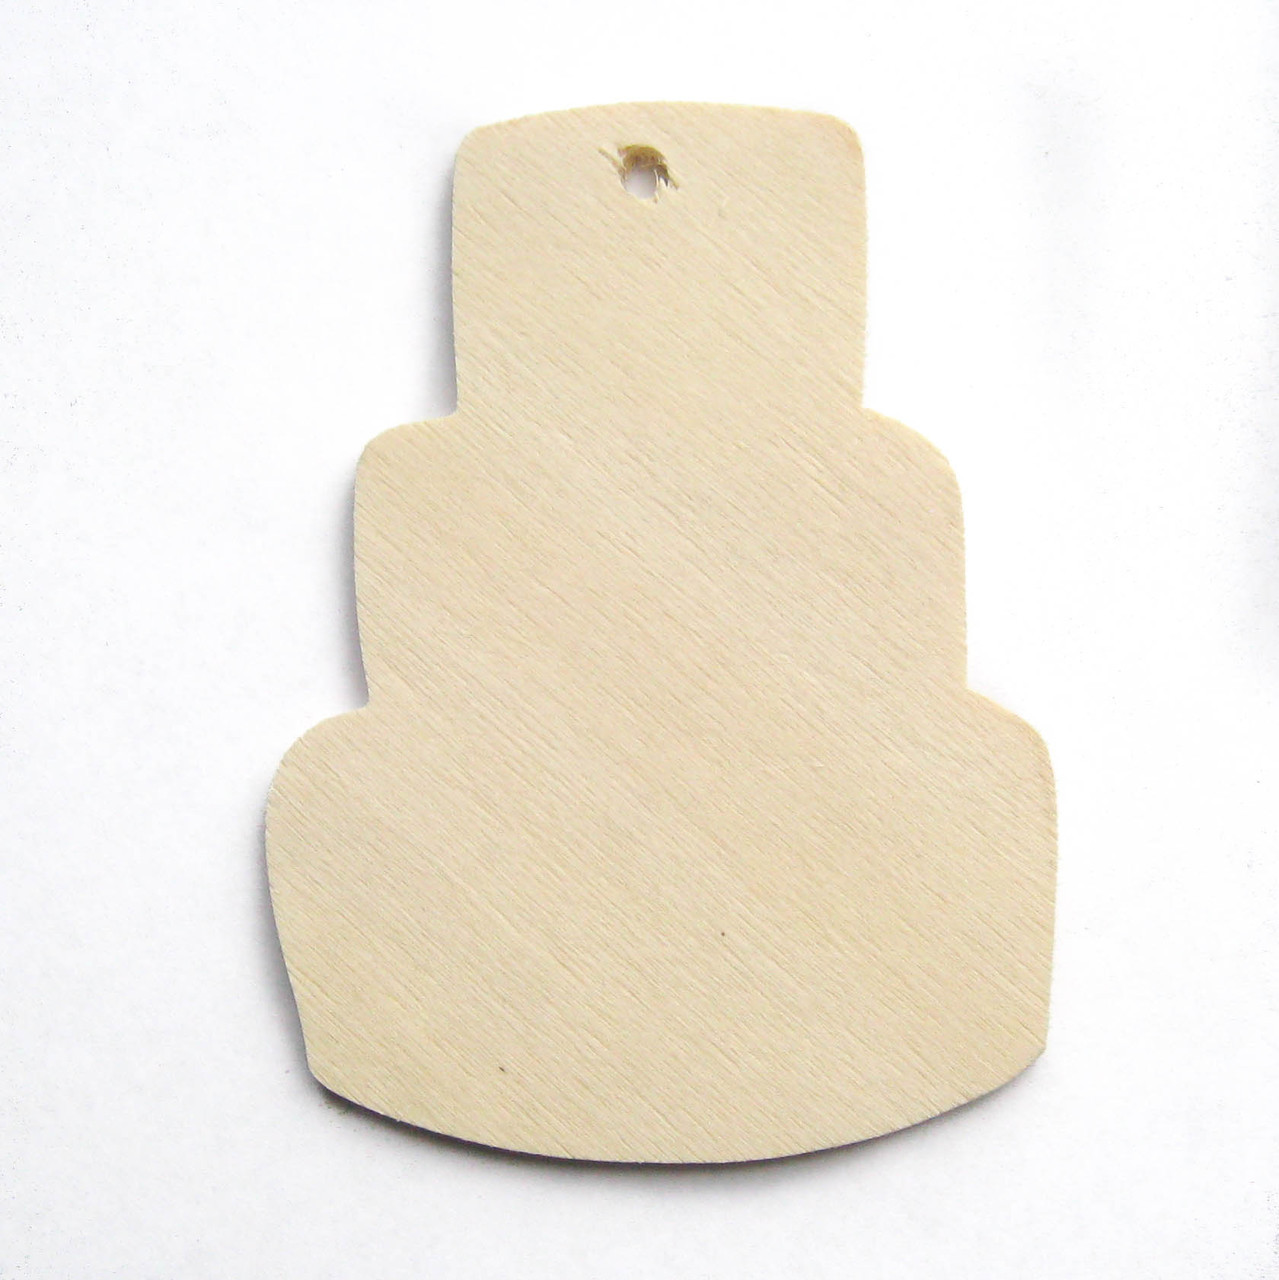 Wood tag, birthday cake, 3 tier, ornament, diy craft, gift wrapping